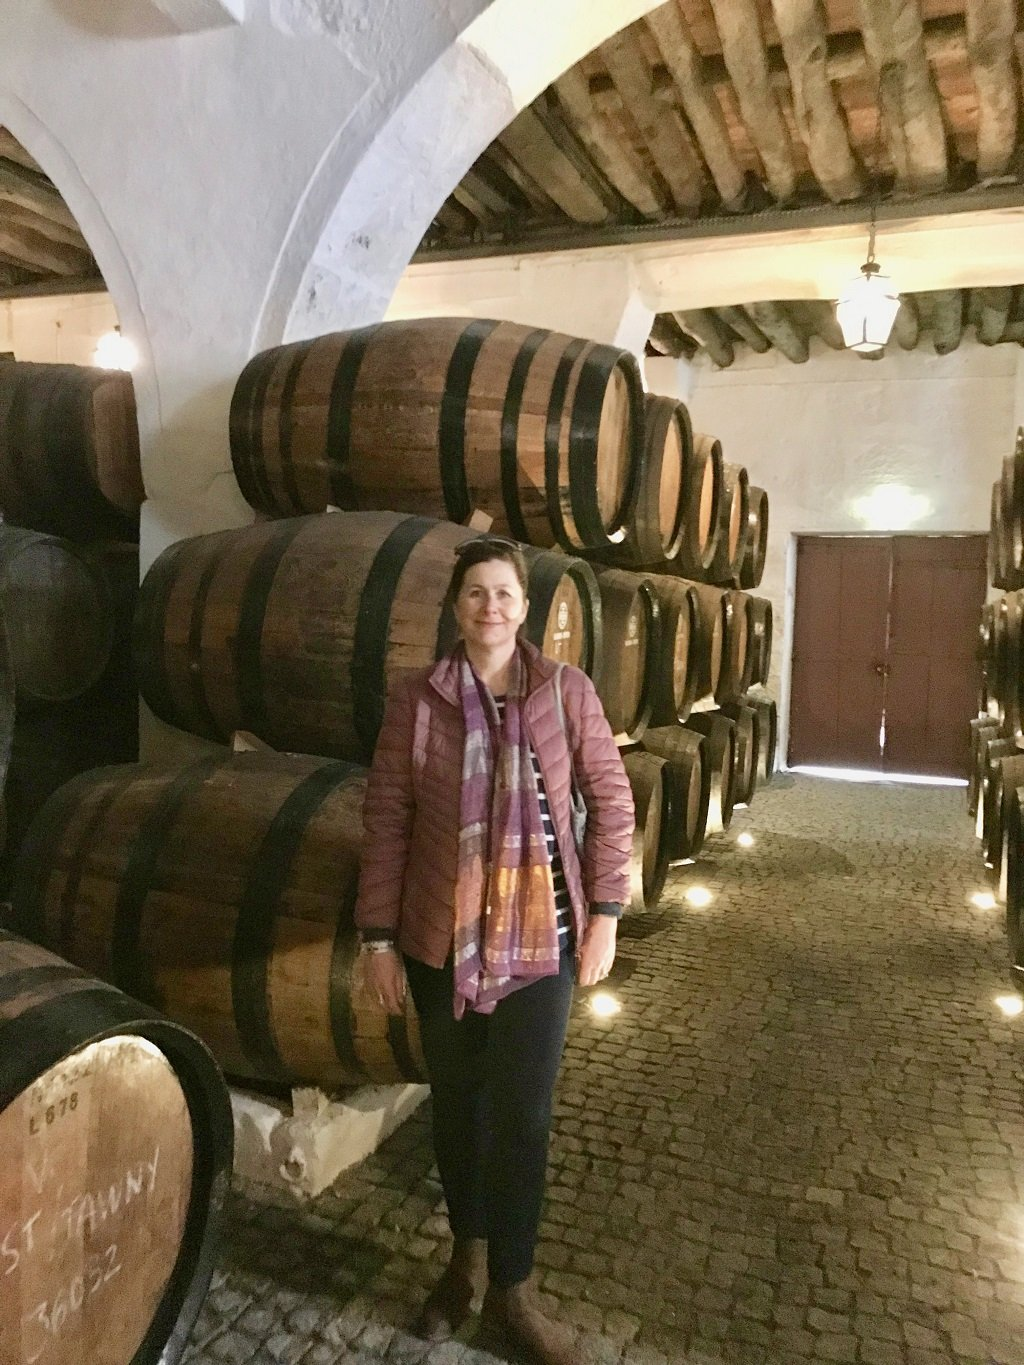 me standing in port cellars during a tour